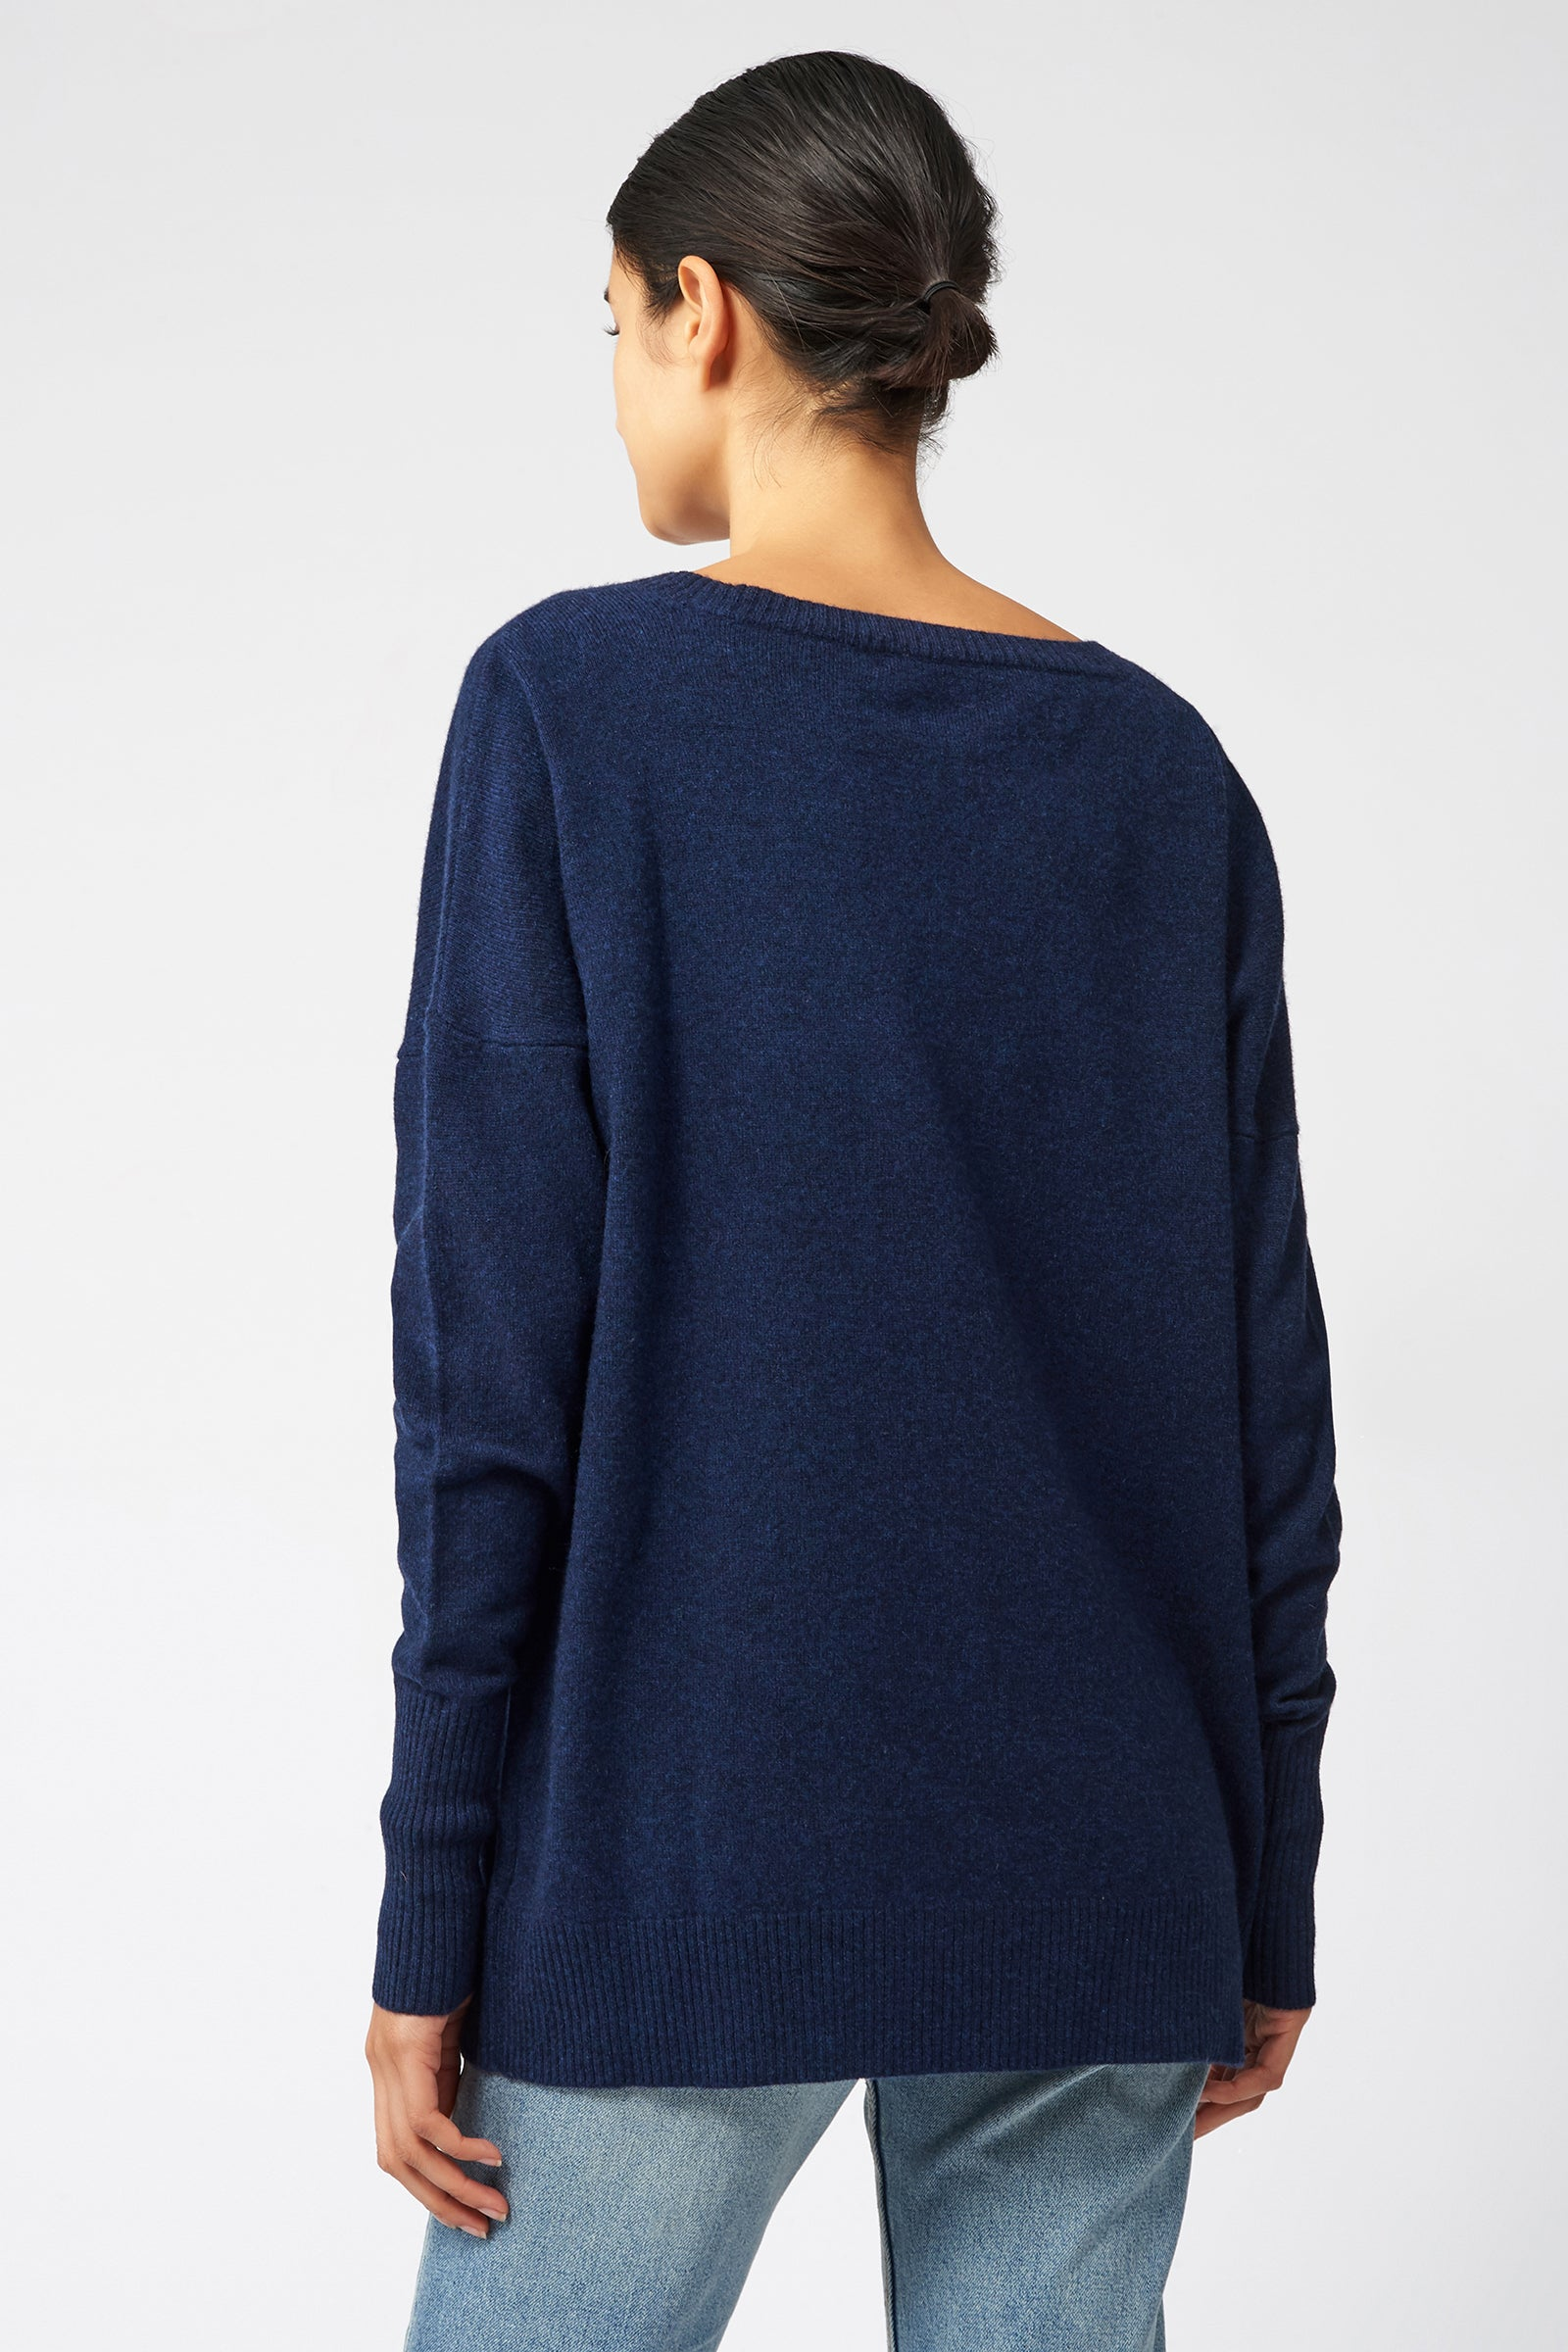 Kal Rieman Cashmere V Neck in Navy on Model Back View